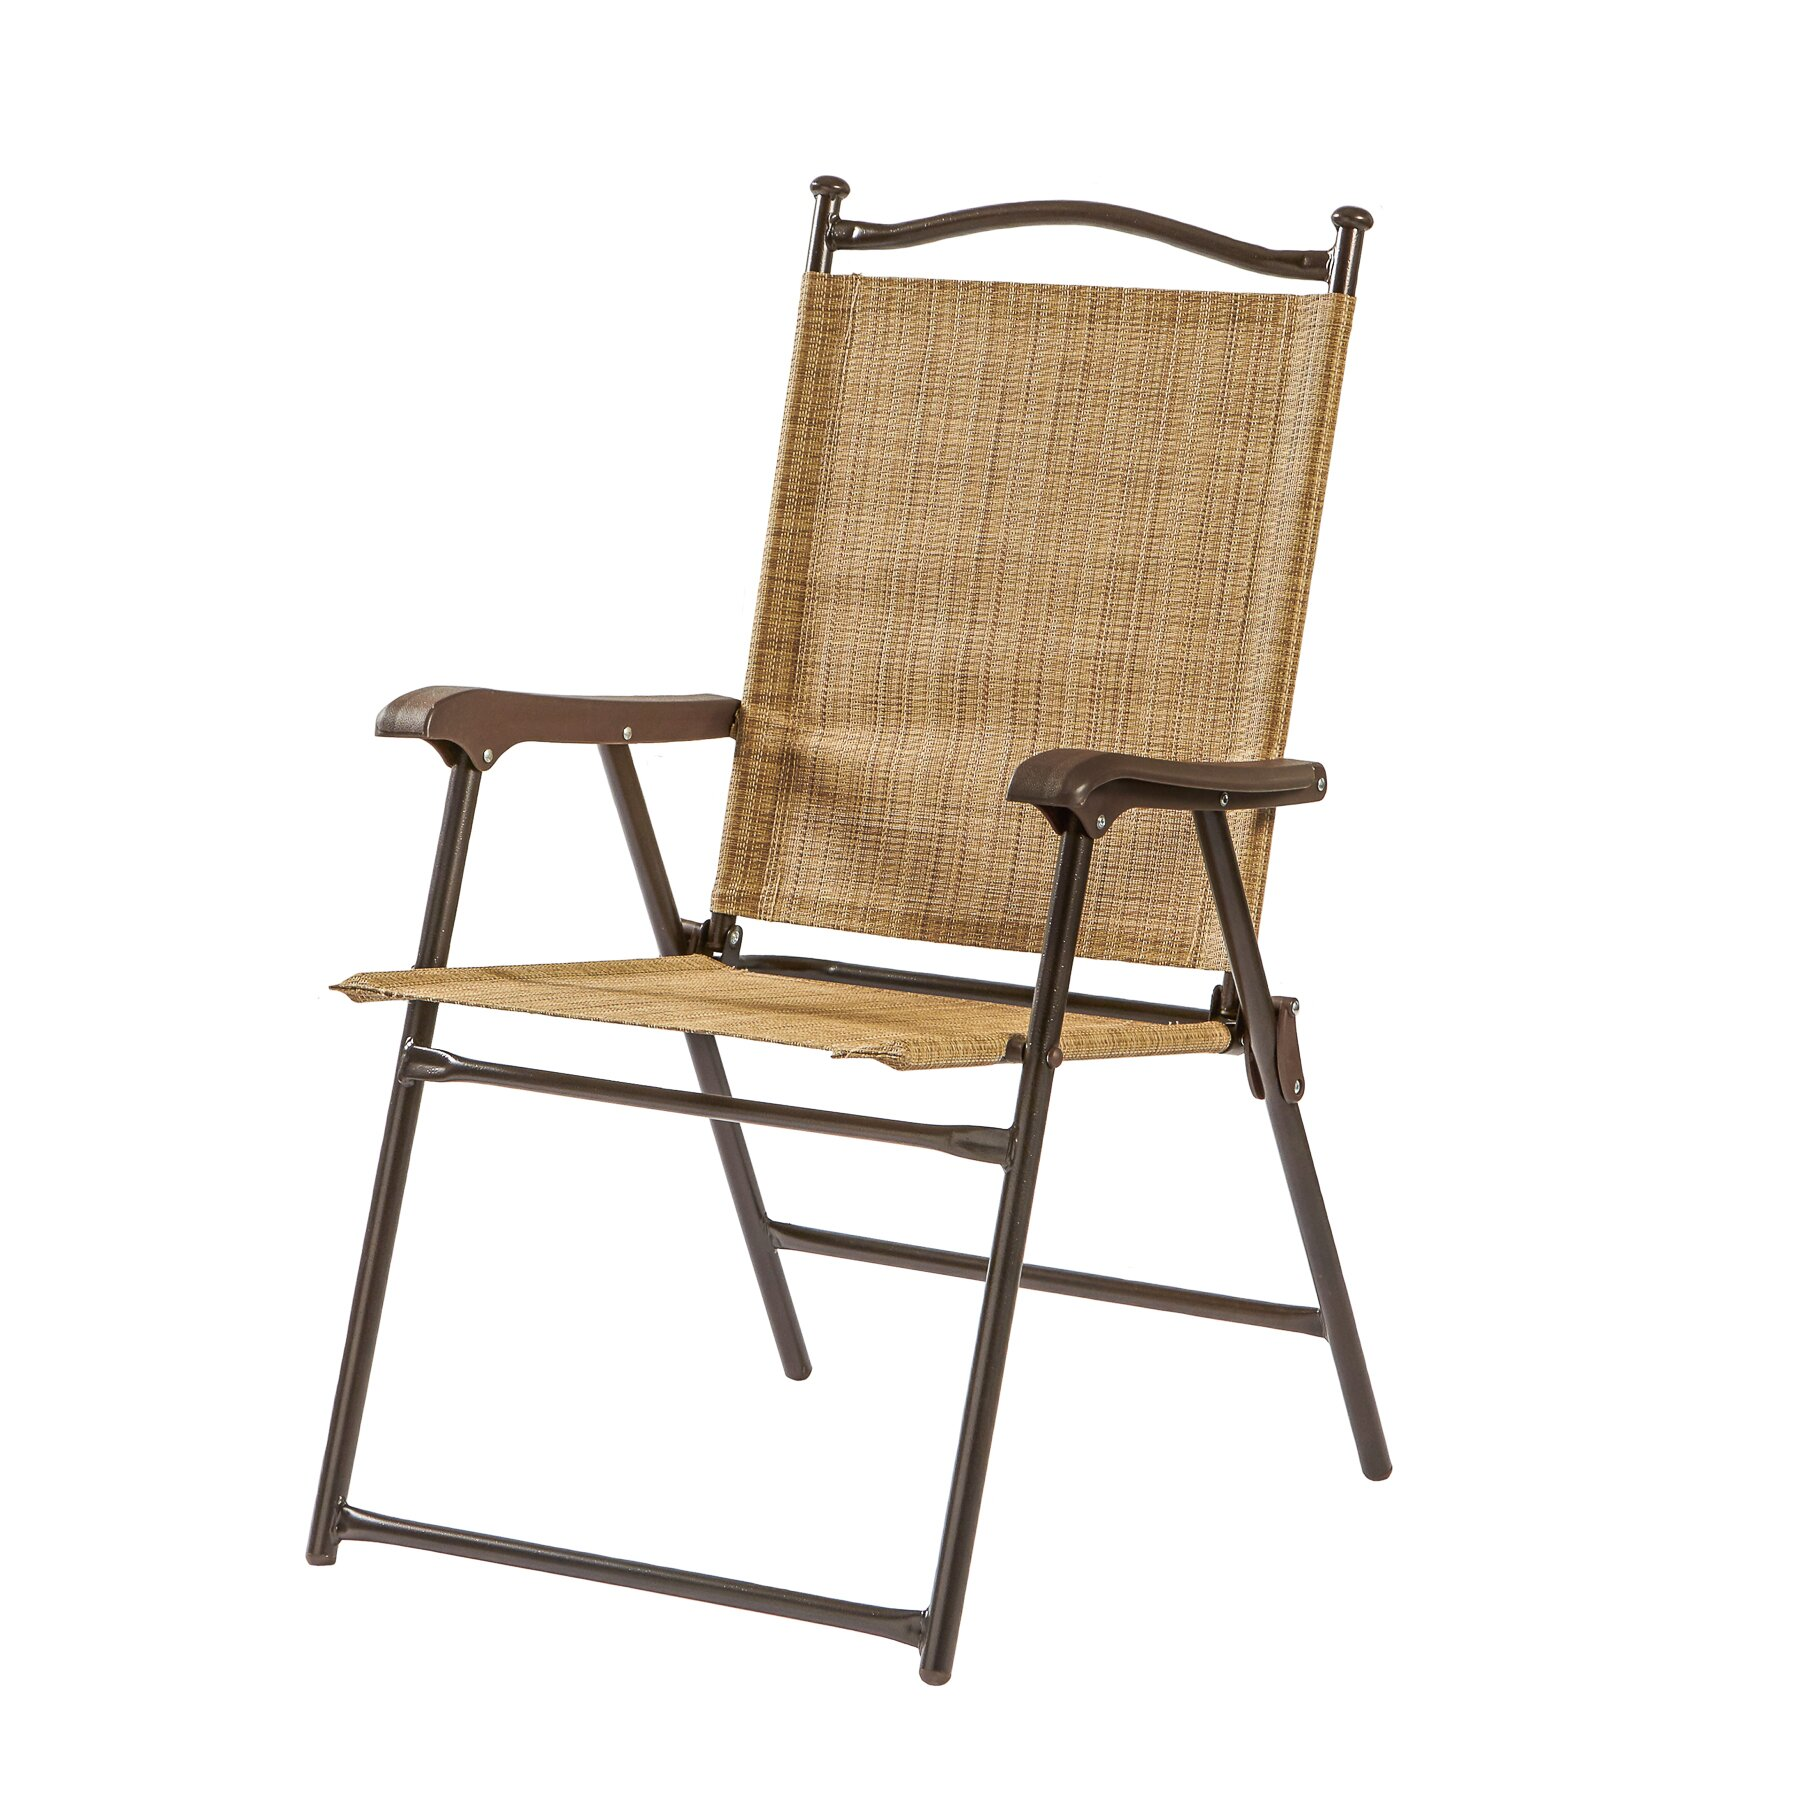 Greendale home fashions sling back outdoor chair reviews for Back porch furniture sets